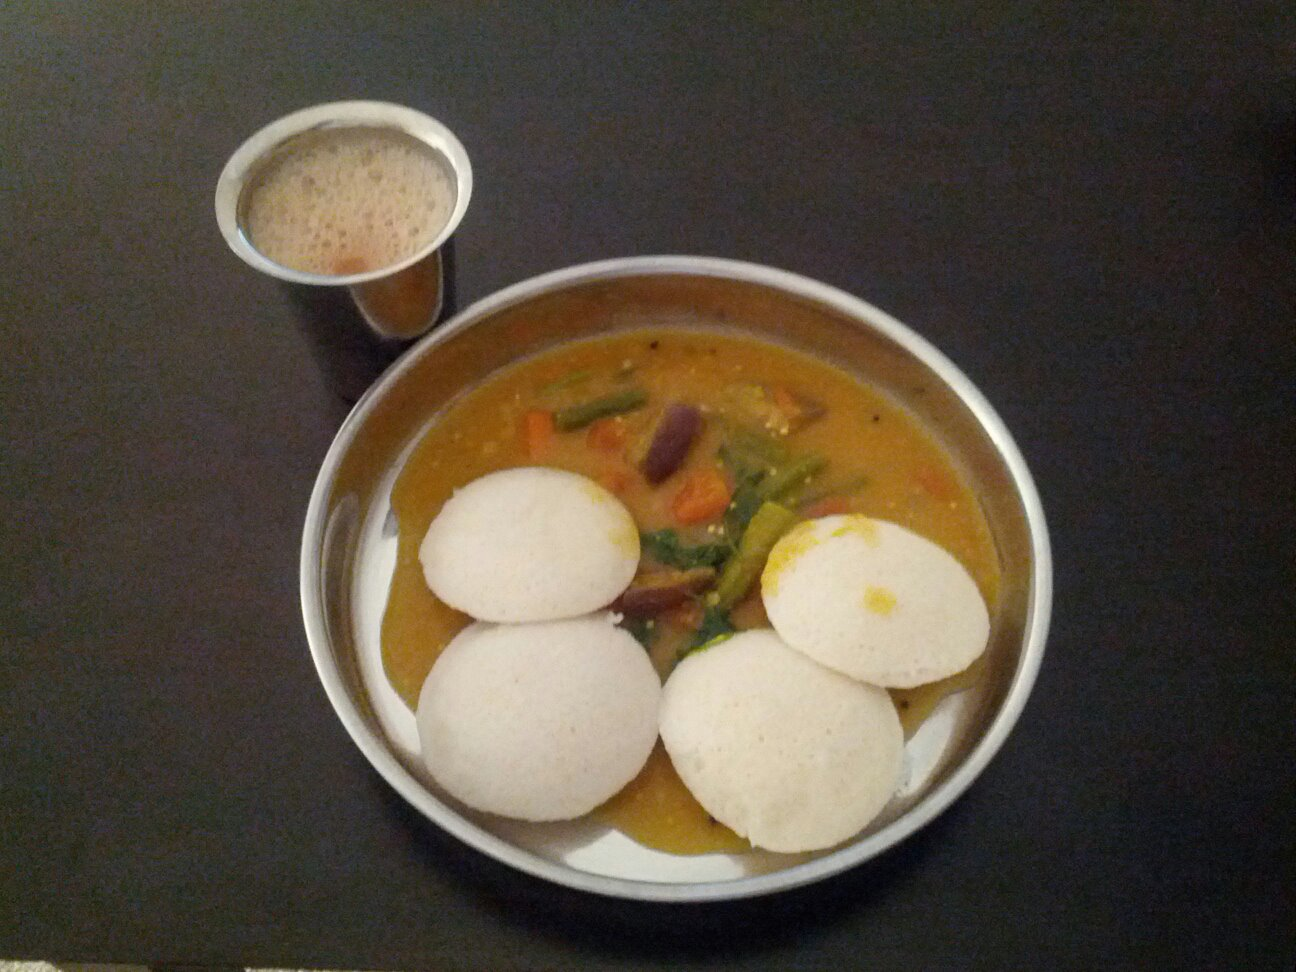 Idly and sambar: South Indian food combination